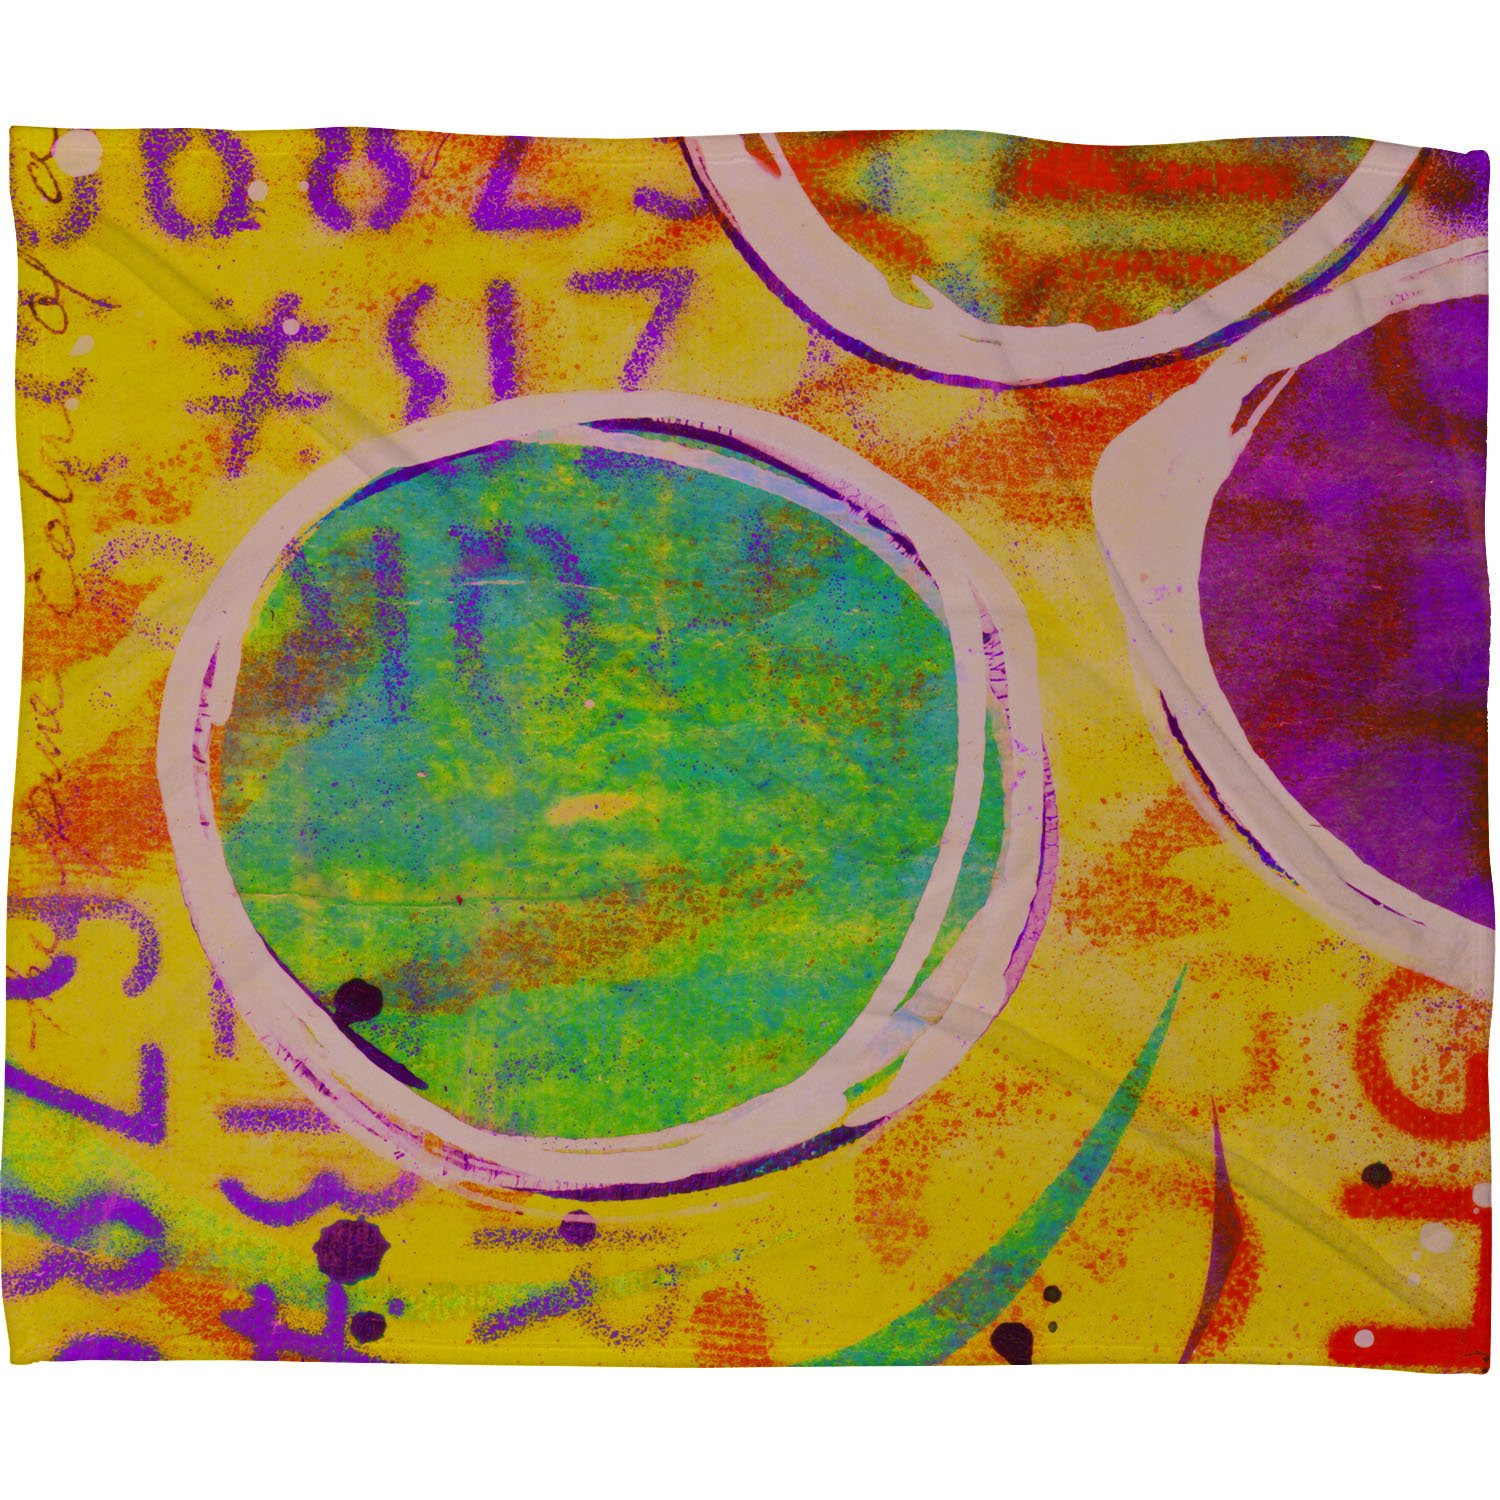 50 x 60 Deny Designs Sophia Buddenhagen Colored Circles Fleece Throw Blanket